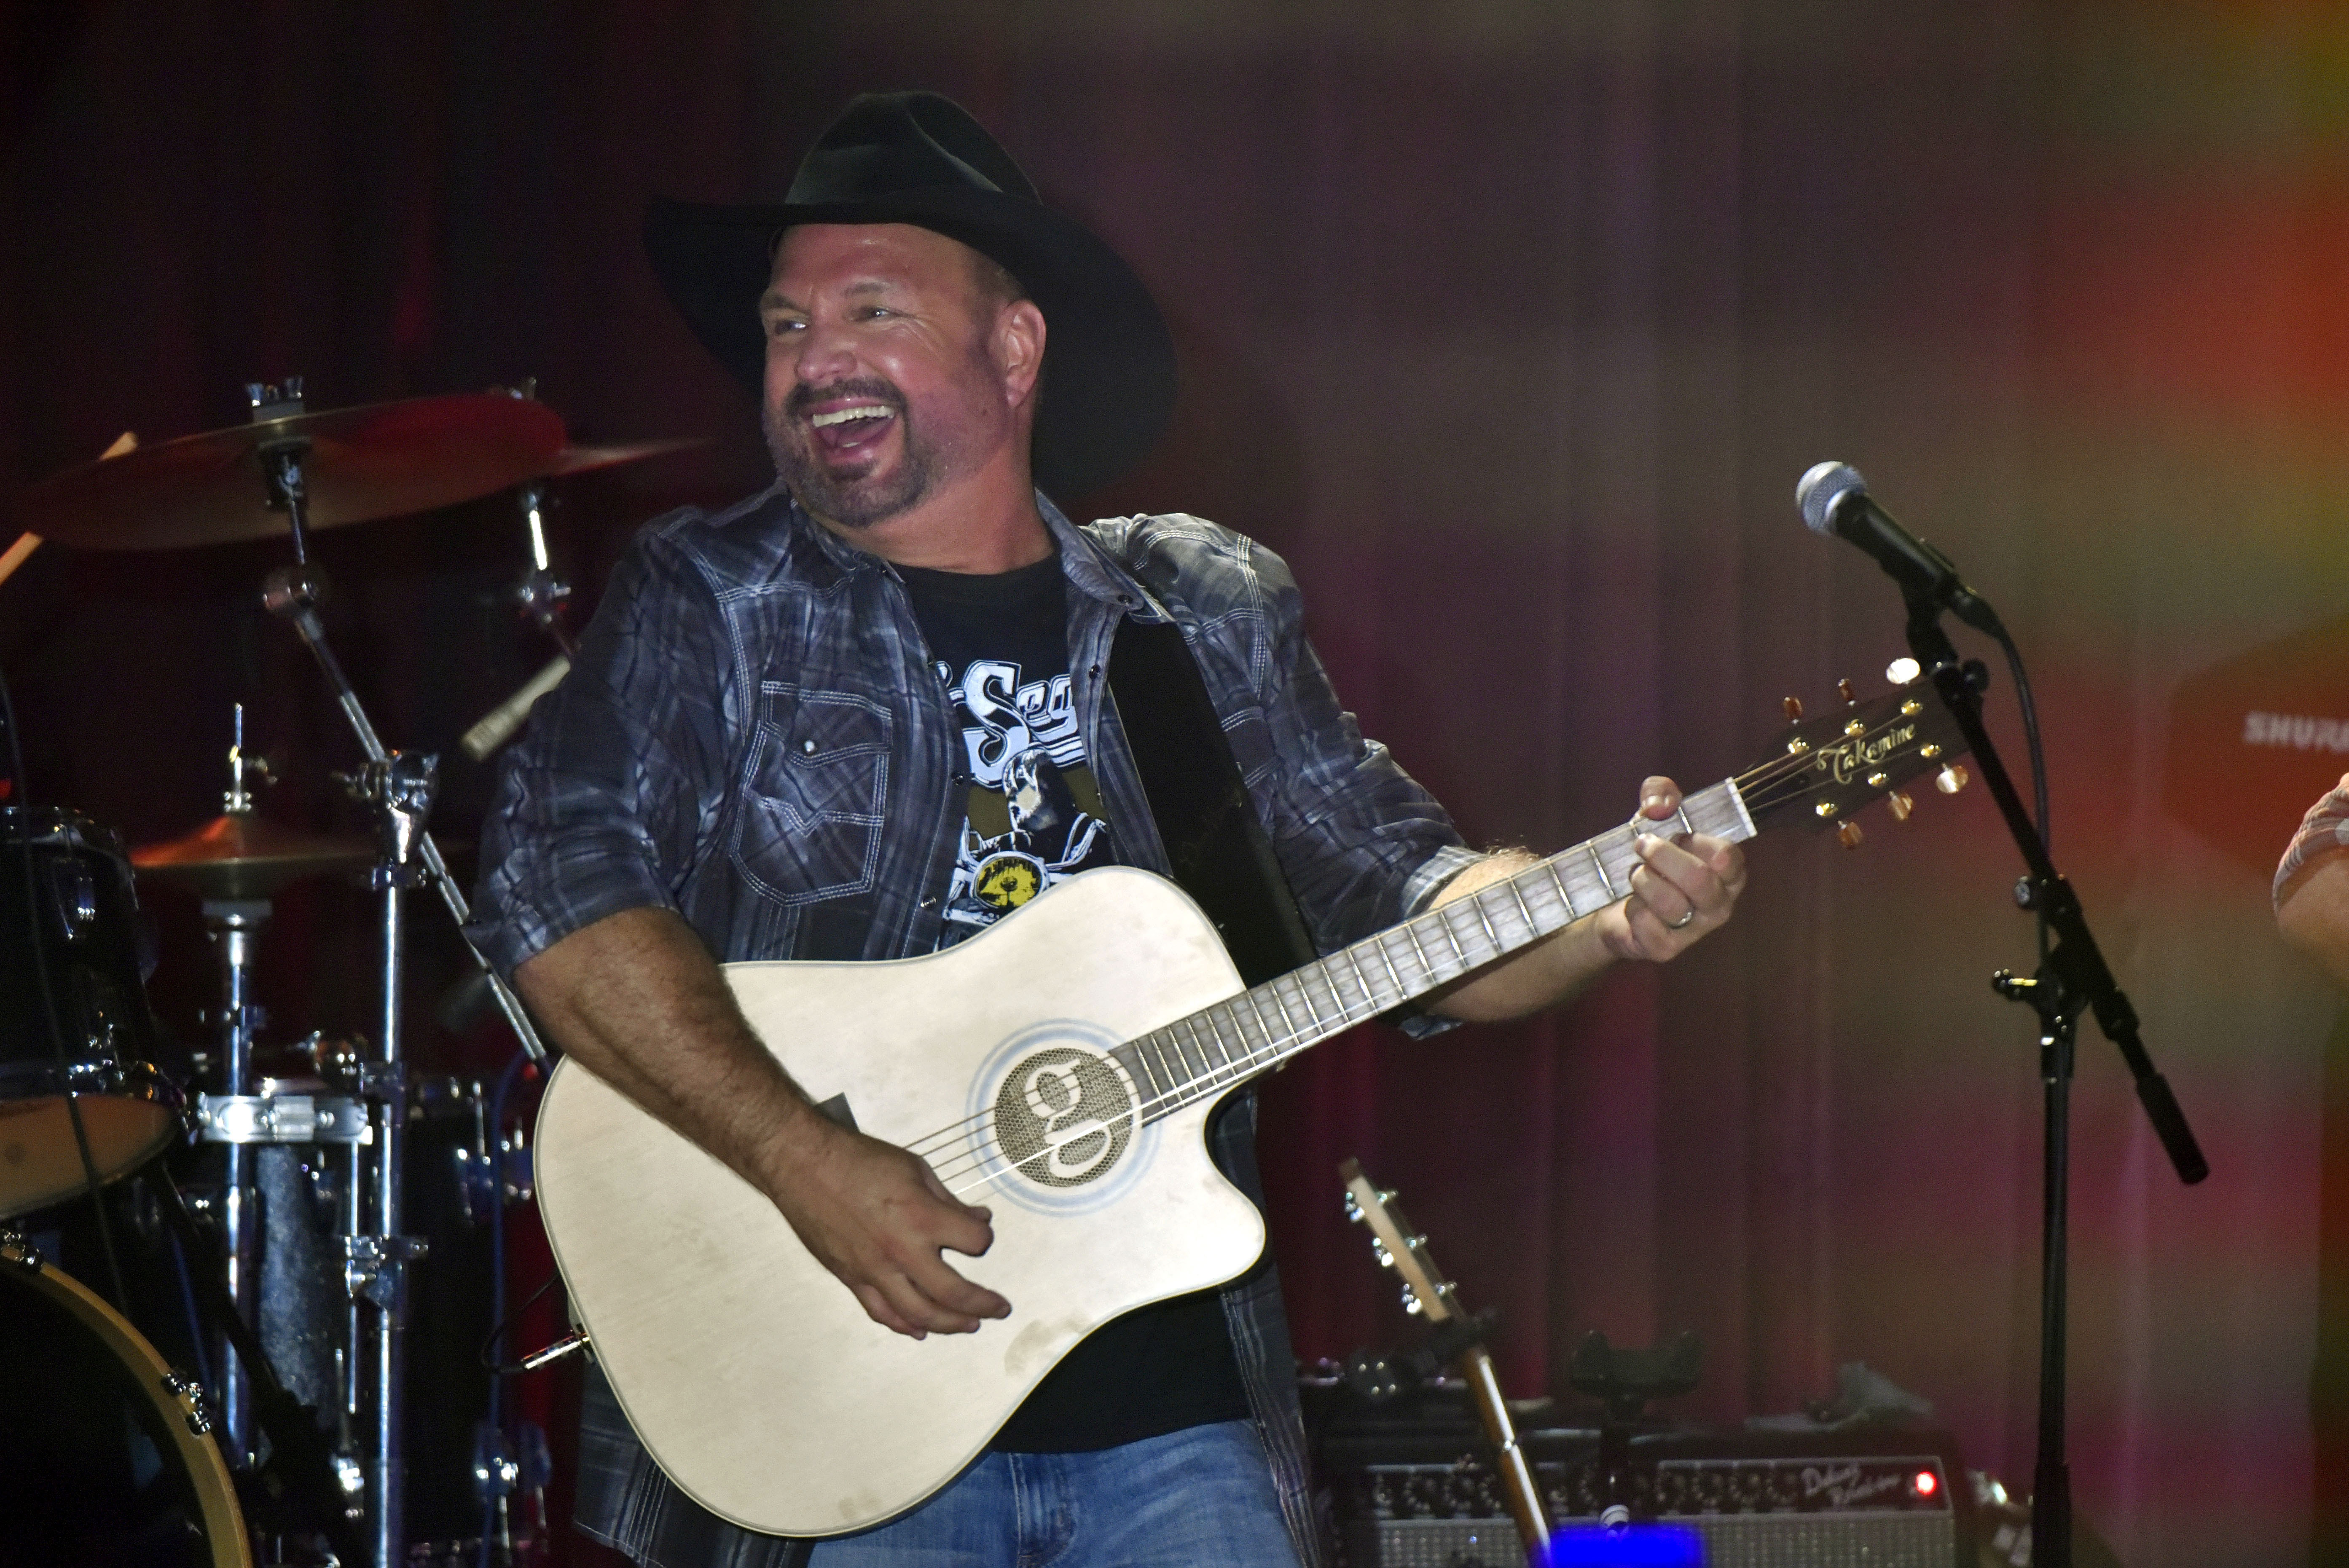 Garth Brooks performs at Joe's in Chicago, Monday, July 15, 2019, on the first stop of his Dive Bar tour. Garth has partnered with Seagram's 7 Crown to secure 700,000 pledges to #JoinThePact, a pledge to never drive impaired.